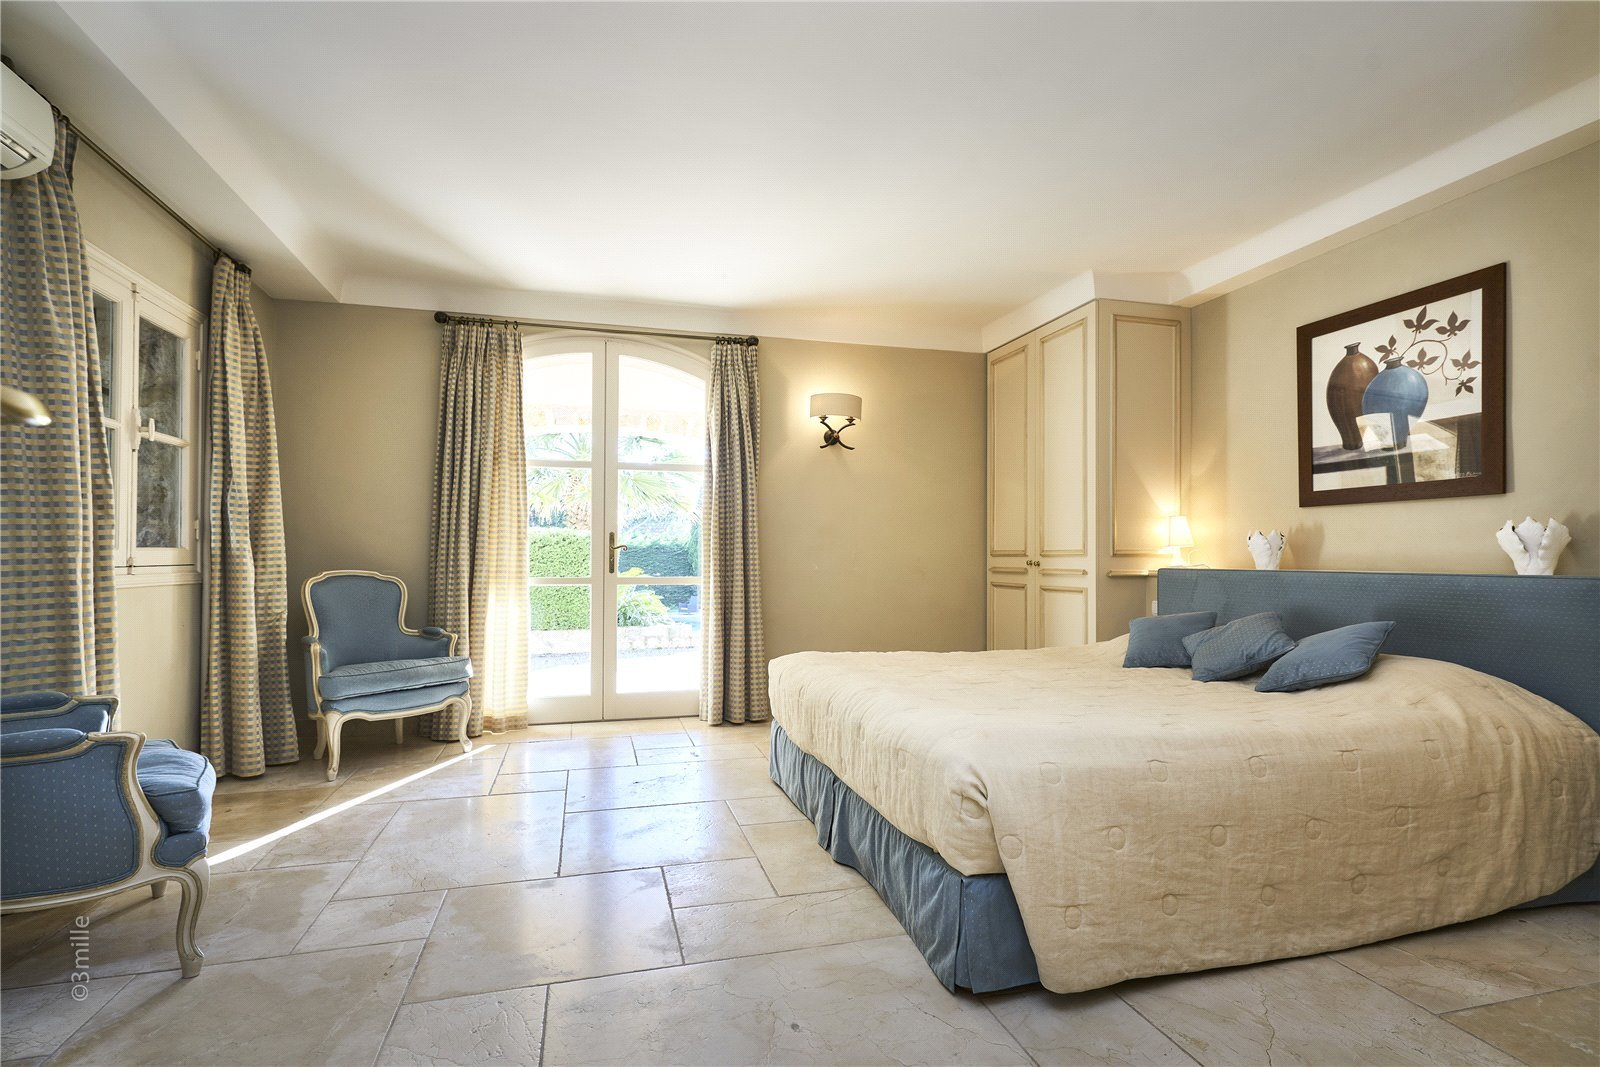 Buying Villa Cap d'Antibes SOLE AGENT. Charming property with 5 en suite bedrooms and an independent guest apartment.